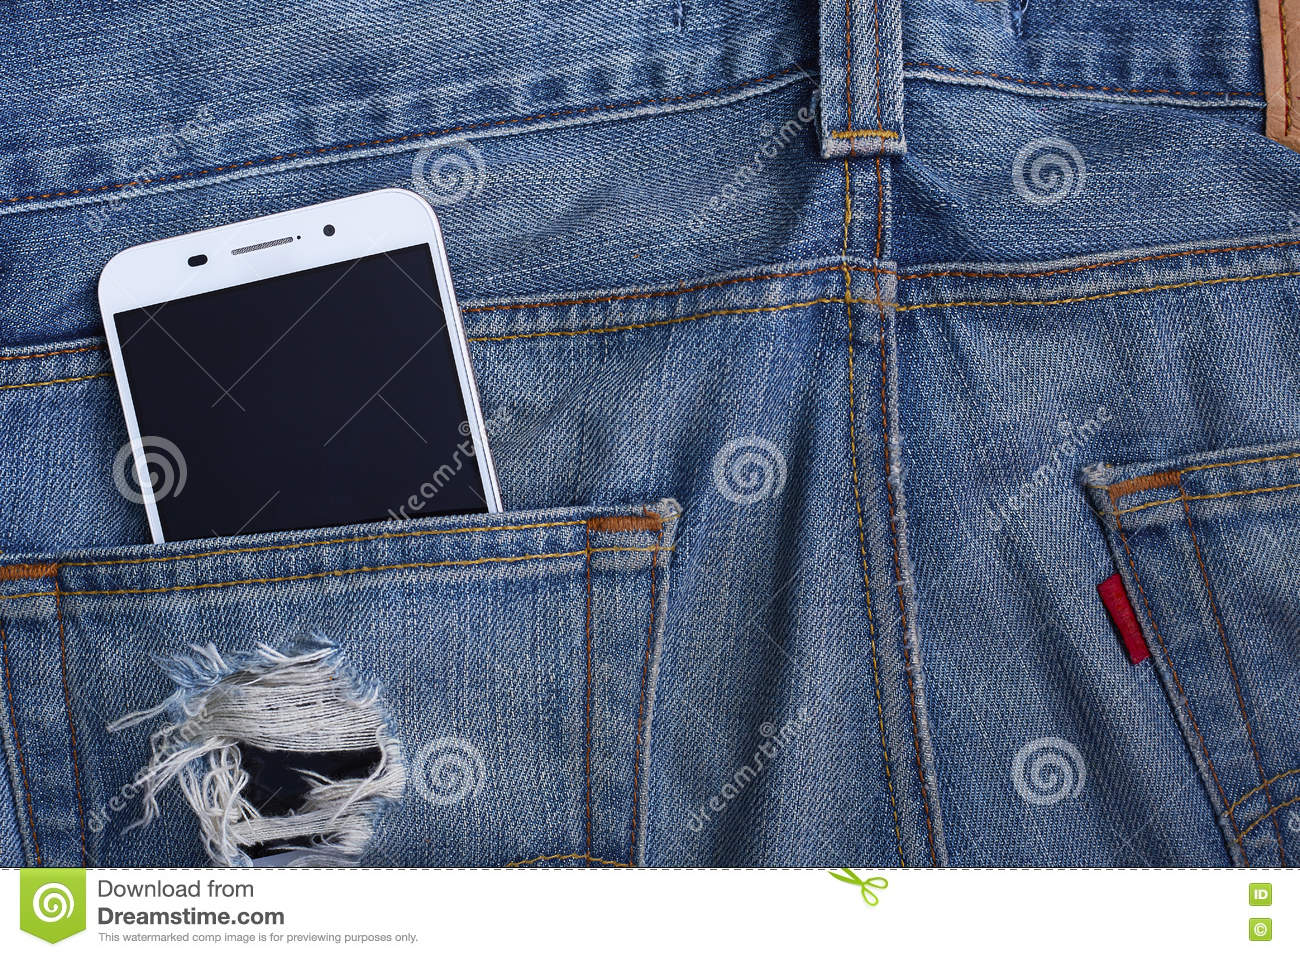 Jeans pocket with smartphone